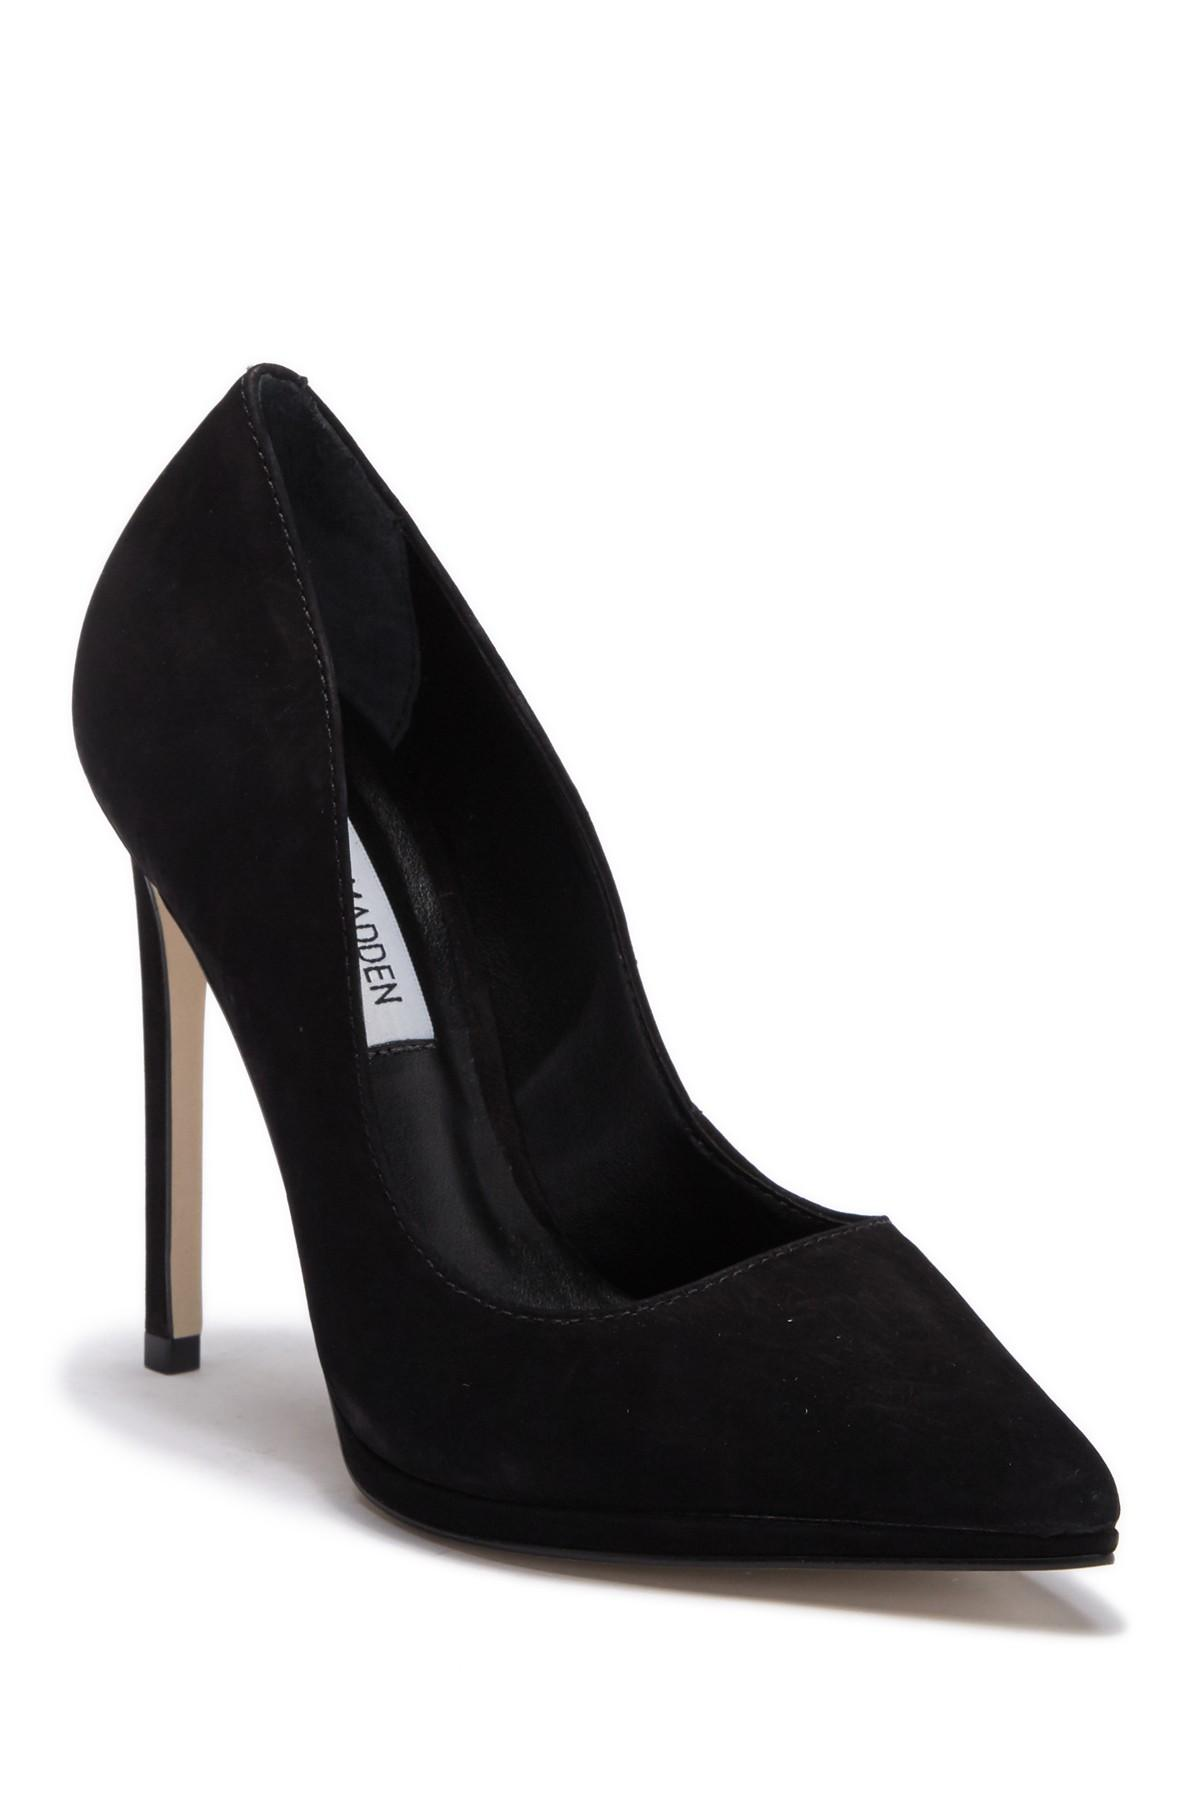 0a268aad748 Lyst - Steve Madden Lovey Stiletto Pump in Black